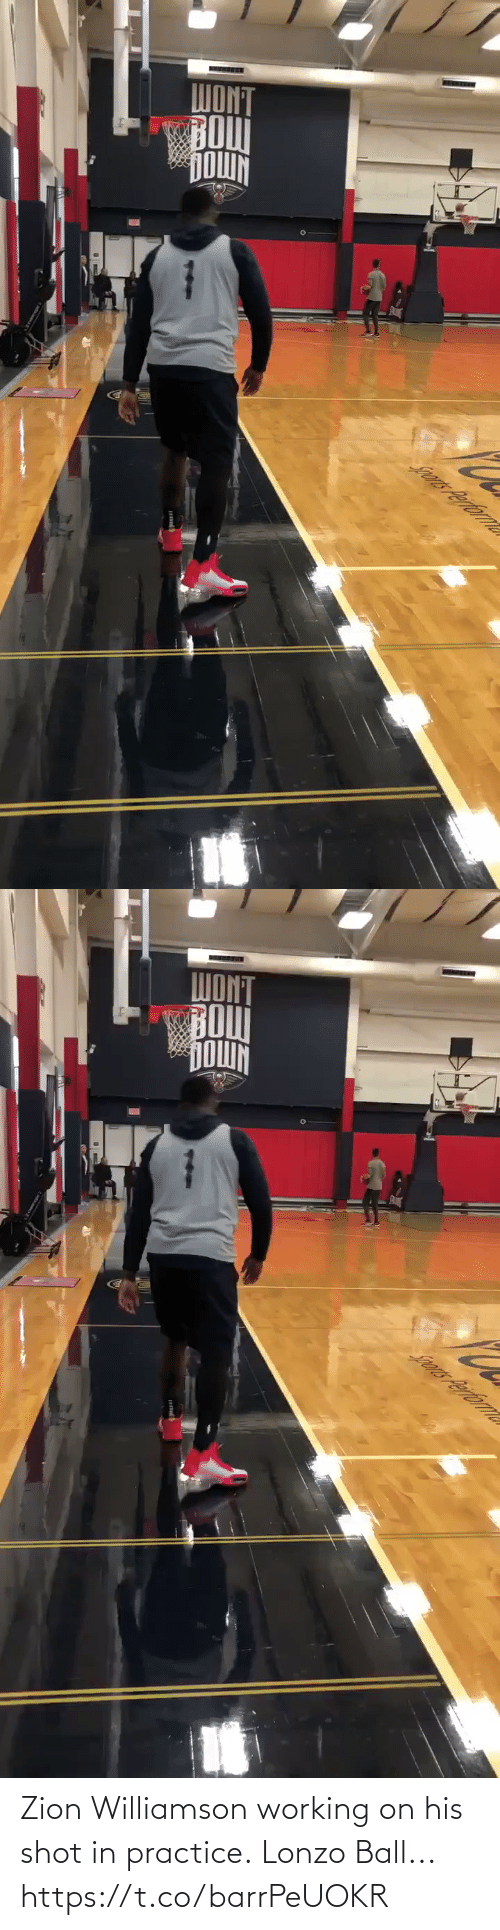 Lonzo Ball: WONT  BOU  DOWN  Jrs Perfornle   Sors Performle Zion Williamson working on his shot in practice.  Lonzo Ball... https://t.co/barrPeUOKR